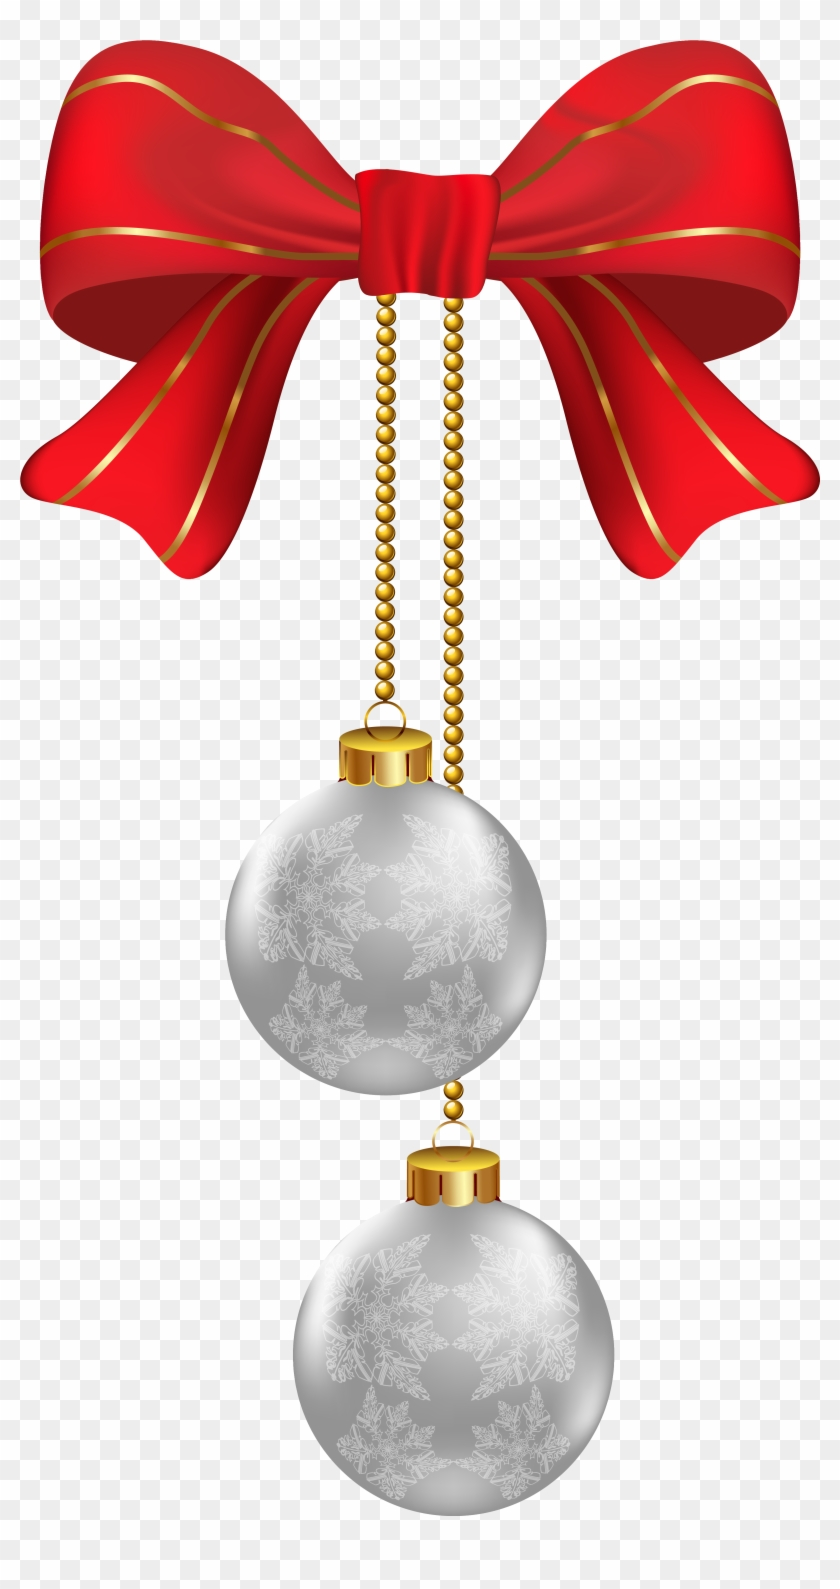 Hanging Christmas Ornament Png - Free Transparent PNG Clipart Images ...